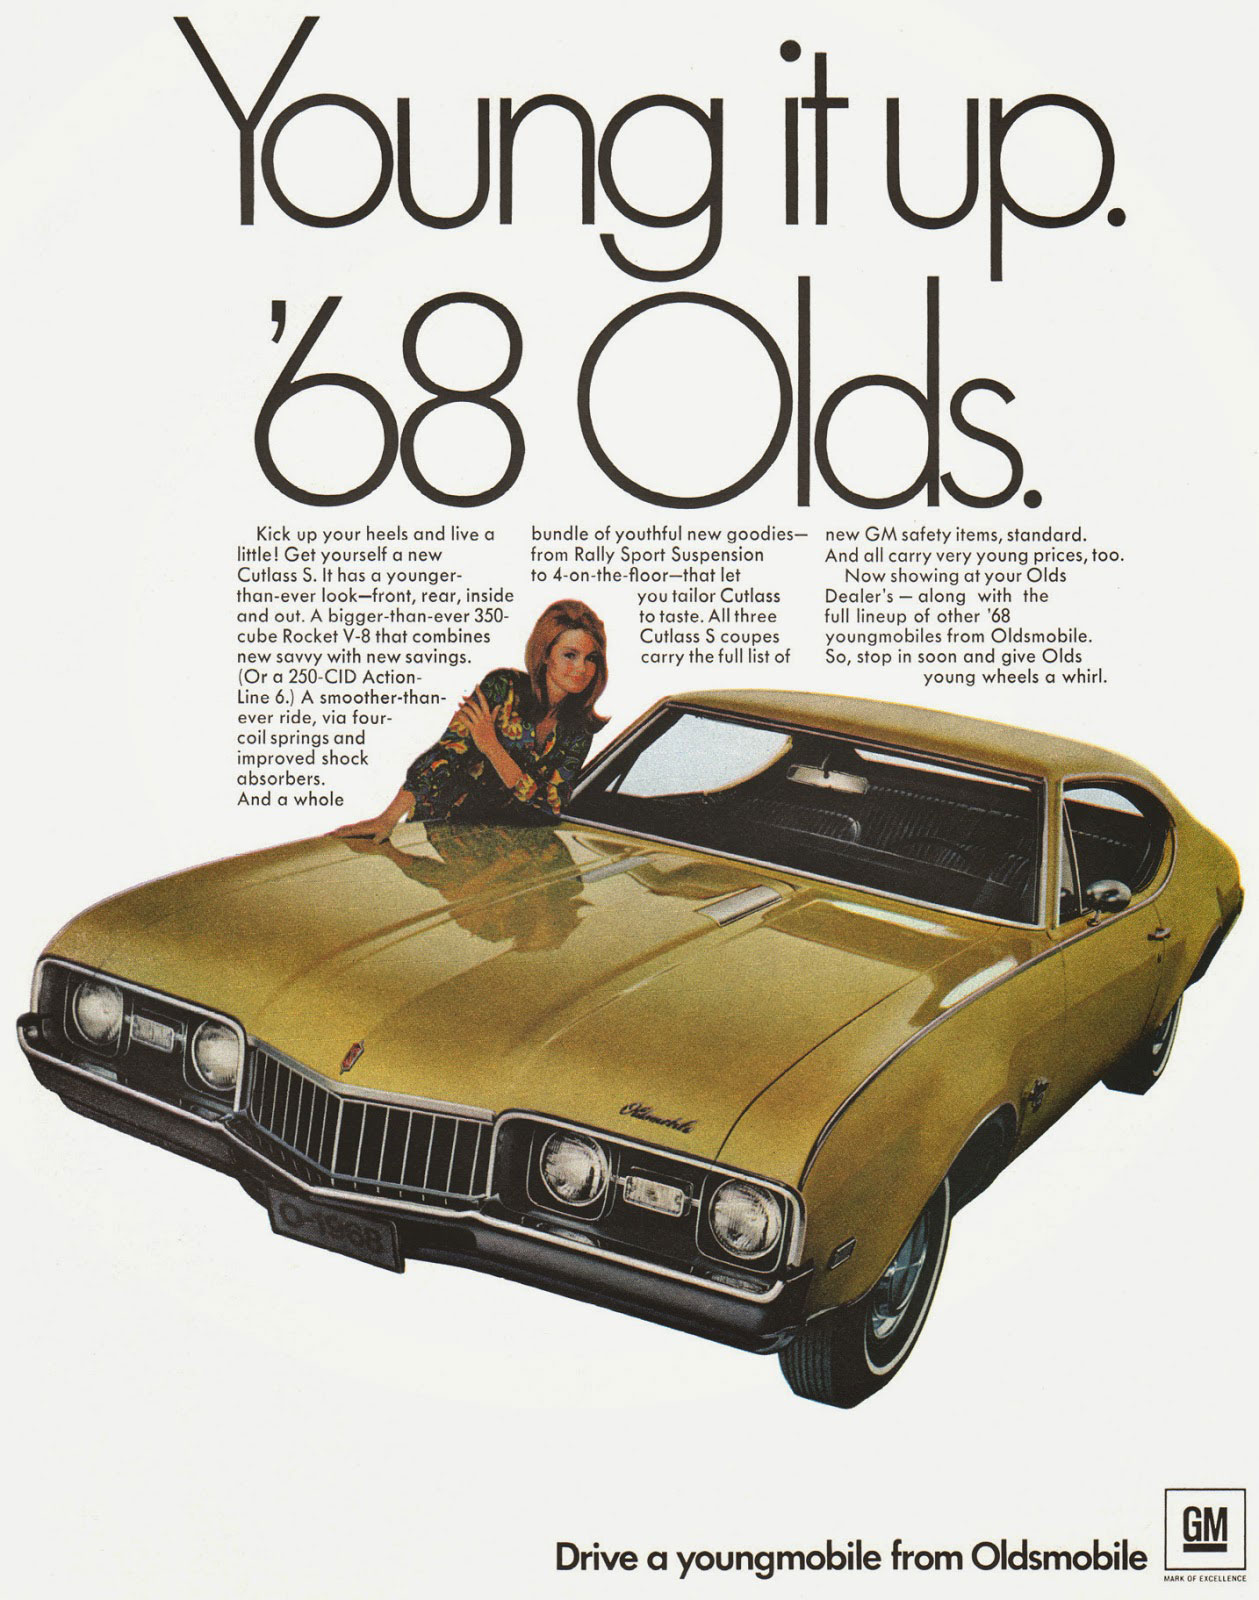 Young it up. The 1968 Oldsmobile Cutlass S. Kick up your heels and live a little! Get yourself a new Cutlass S. It has a younger-than-ever look—front, rear, inside and out. A bigger-than-ever 350-cube Rocket V-8 that combines new savvy with new savings. (Or a 250-CID Action-Line 6.) A smoother-than-ever ride, via four-coil springs and improved shock absorbers. And a whole  bundle of youthful new goodies— new GM safety items, standard. from Rally Sport Suspension And all carry very young prices, too. to 4-on-the-floor—that let Now showing at your Olds you tailor Cutlass Dealer's — along with the to taste. All three full lineup of other '68 Cutlass S coupes youngmobiles from Oldsmobile. carry the full list of So, stop in soon and give Olds young wheels a whirl.   Drive a youngmobile from Oldsmobile  GM  .11S Of UMW.